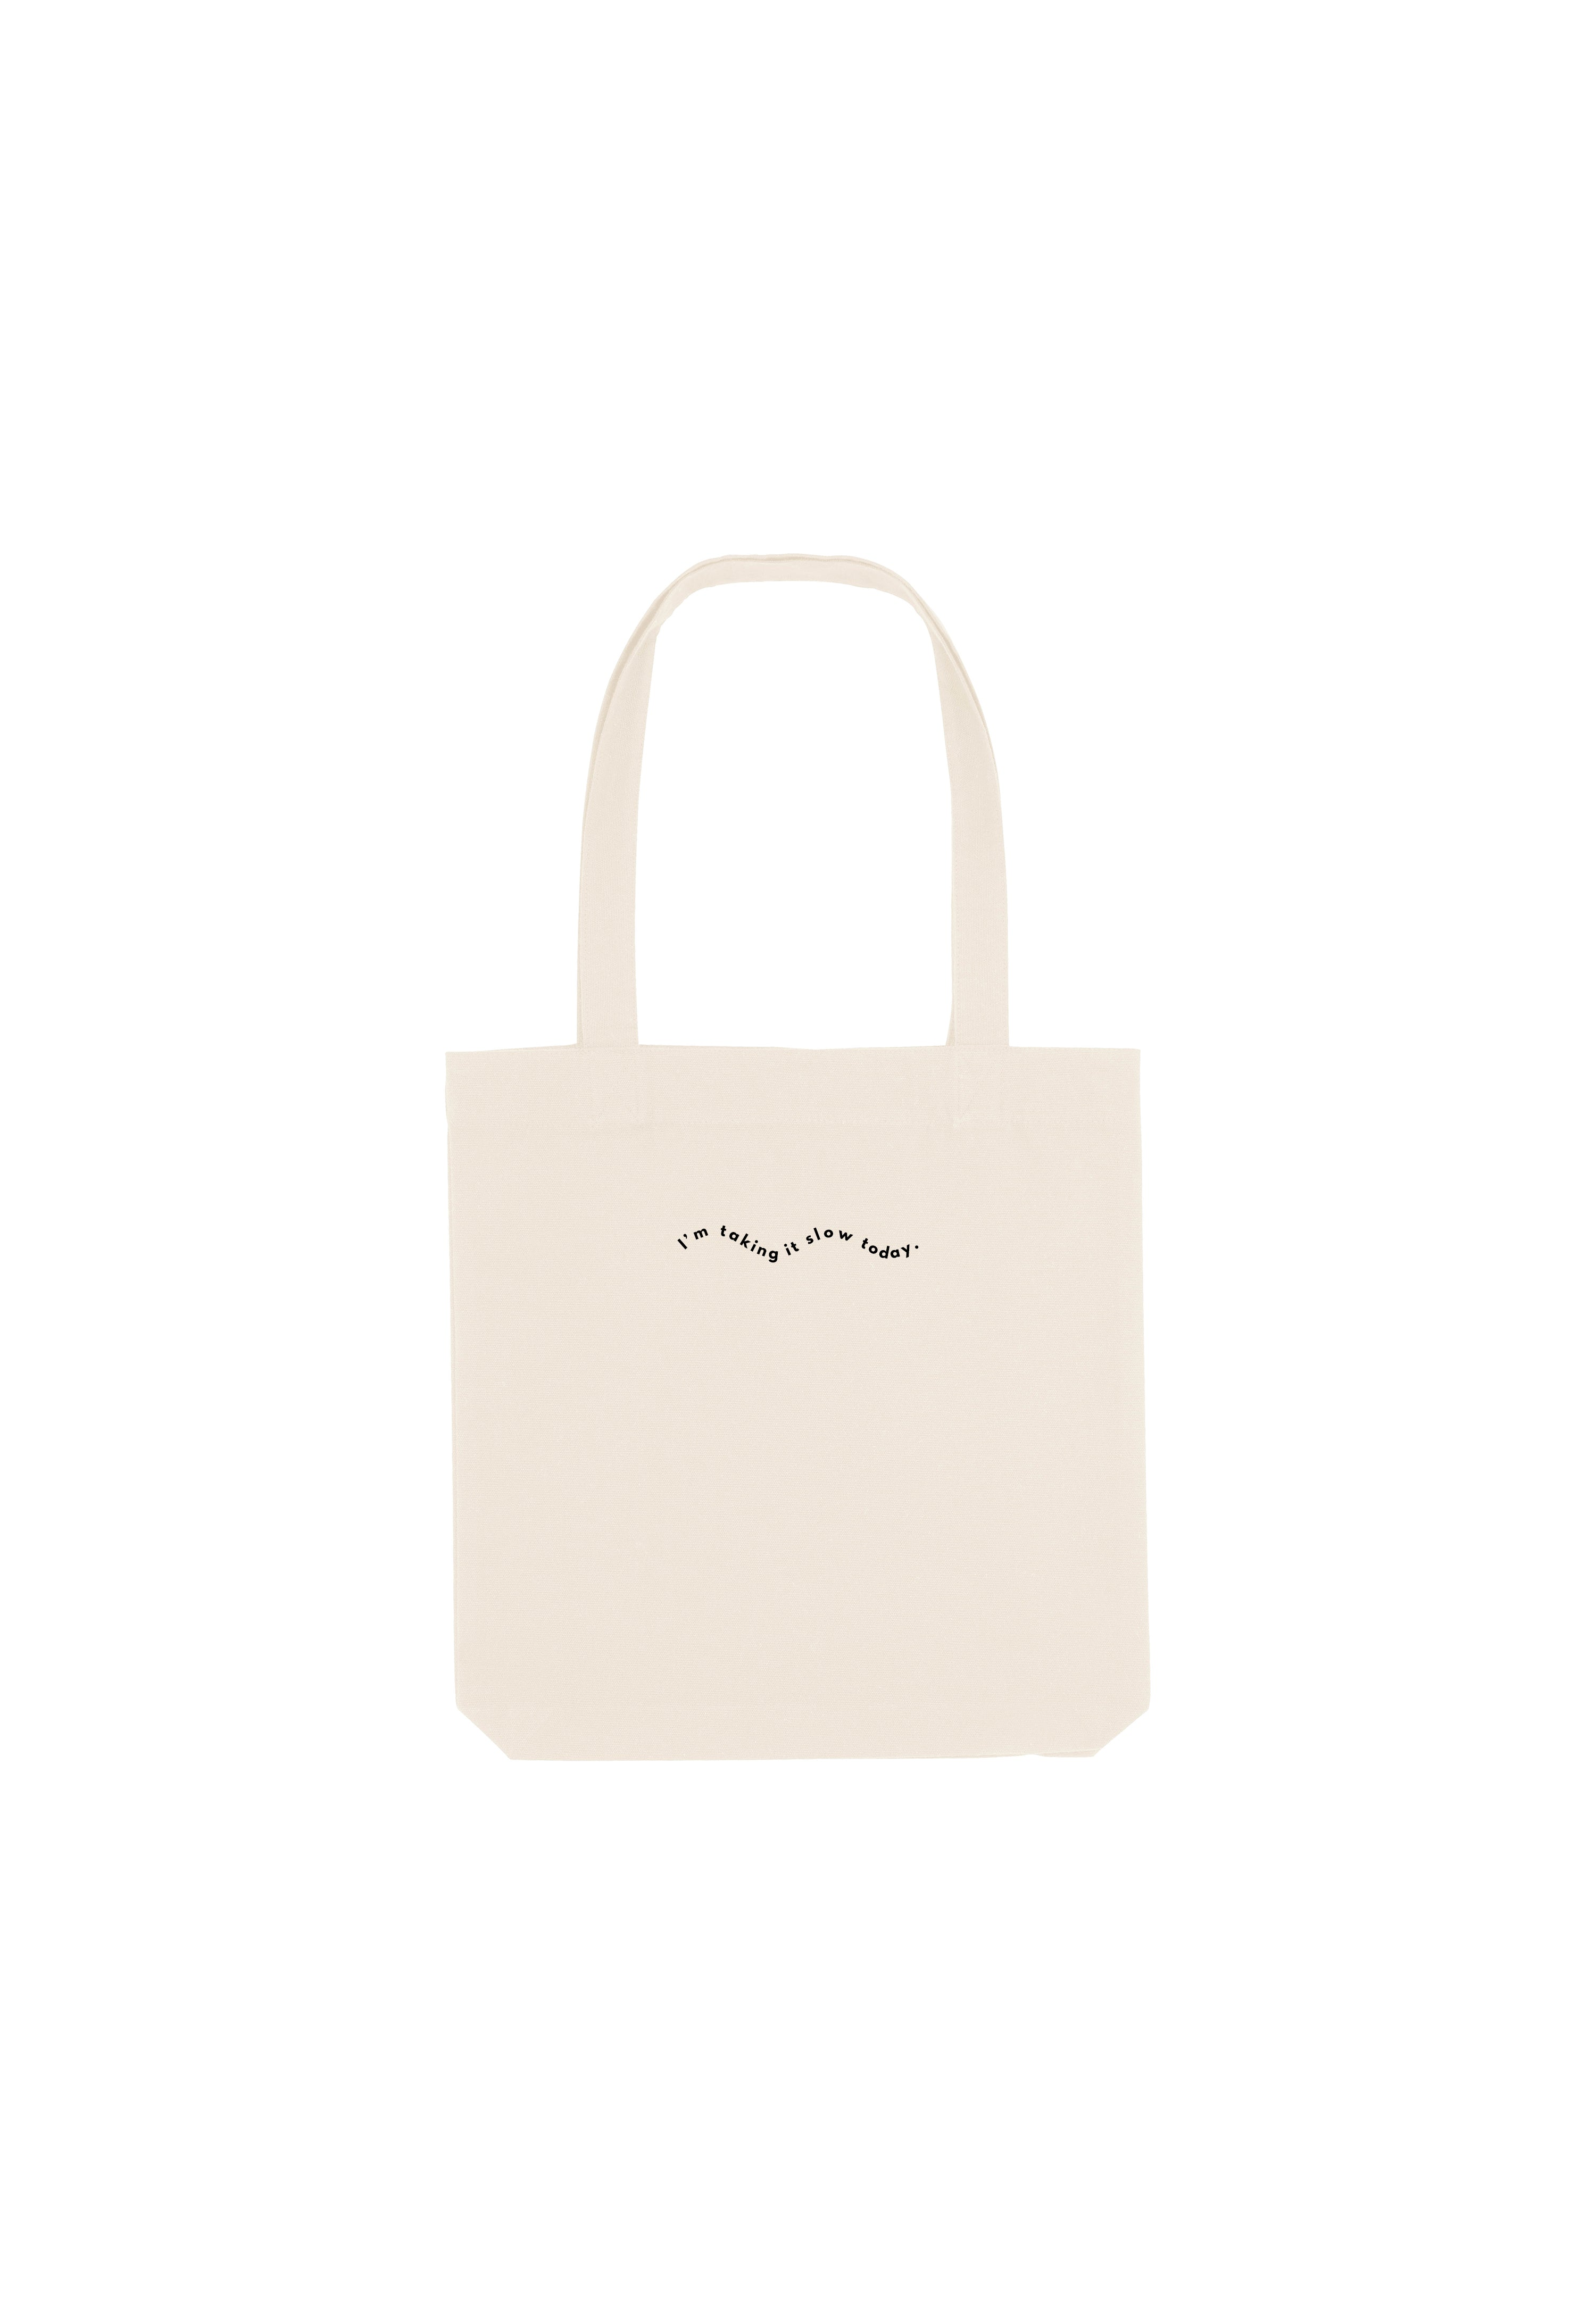 Taking It Slow Tote Bag